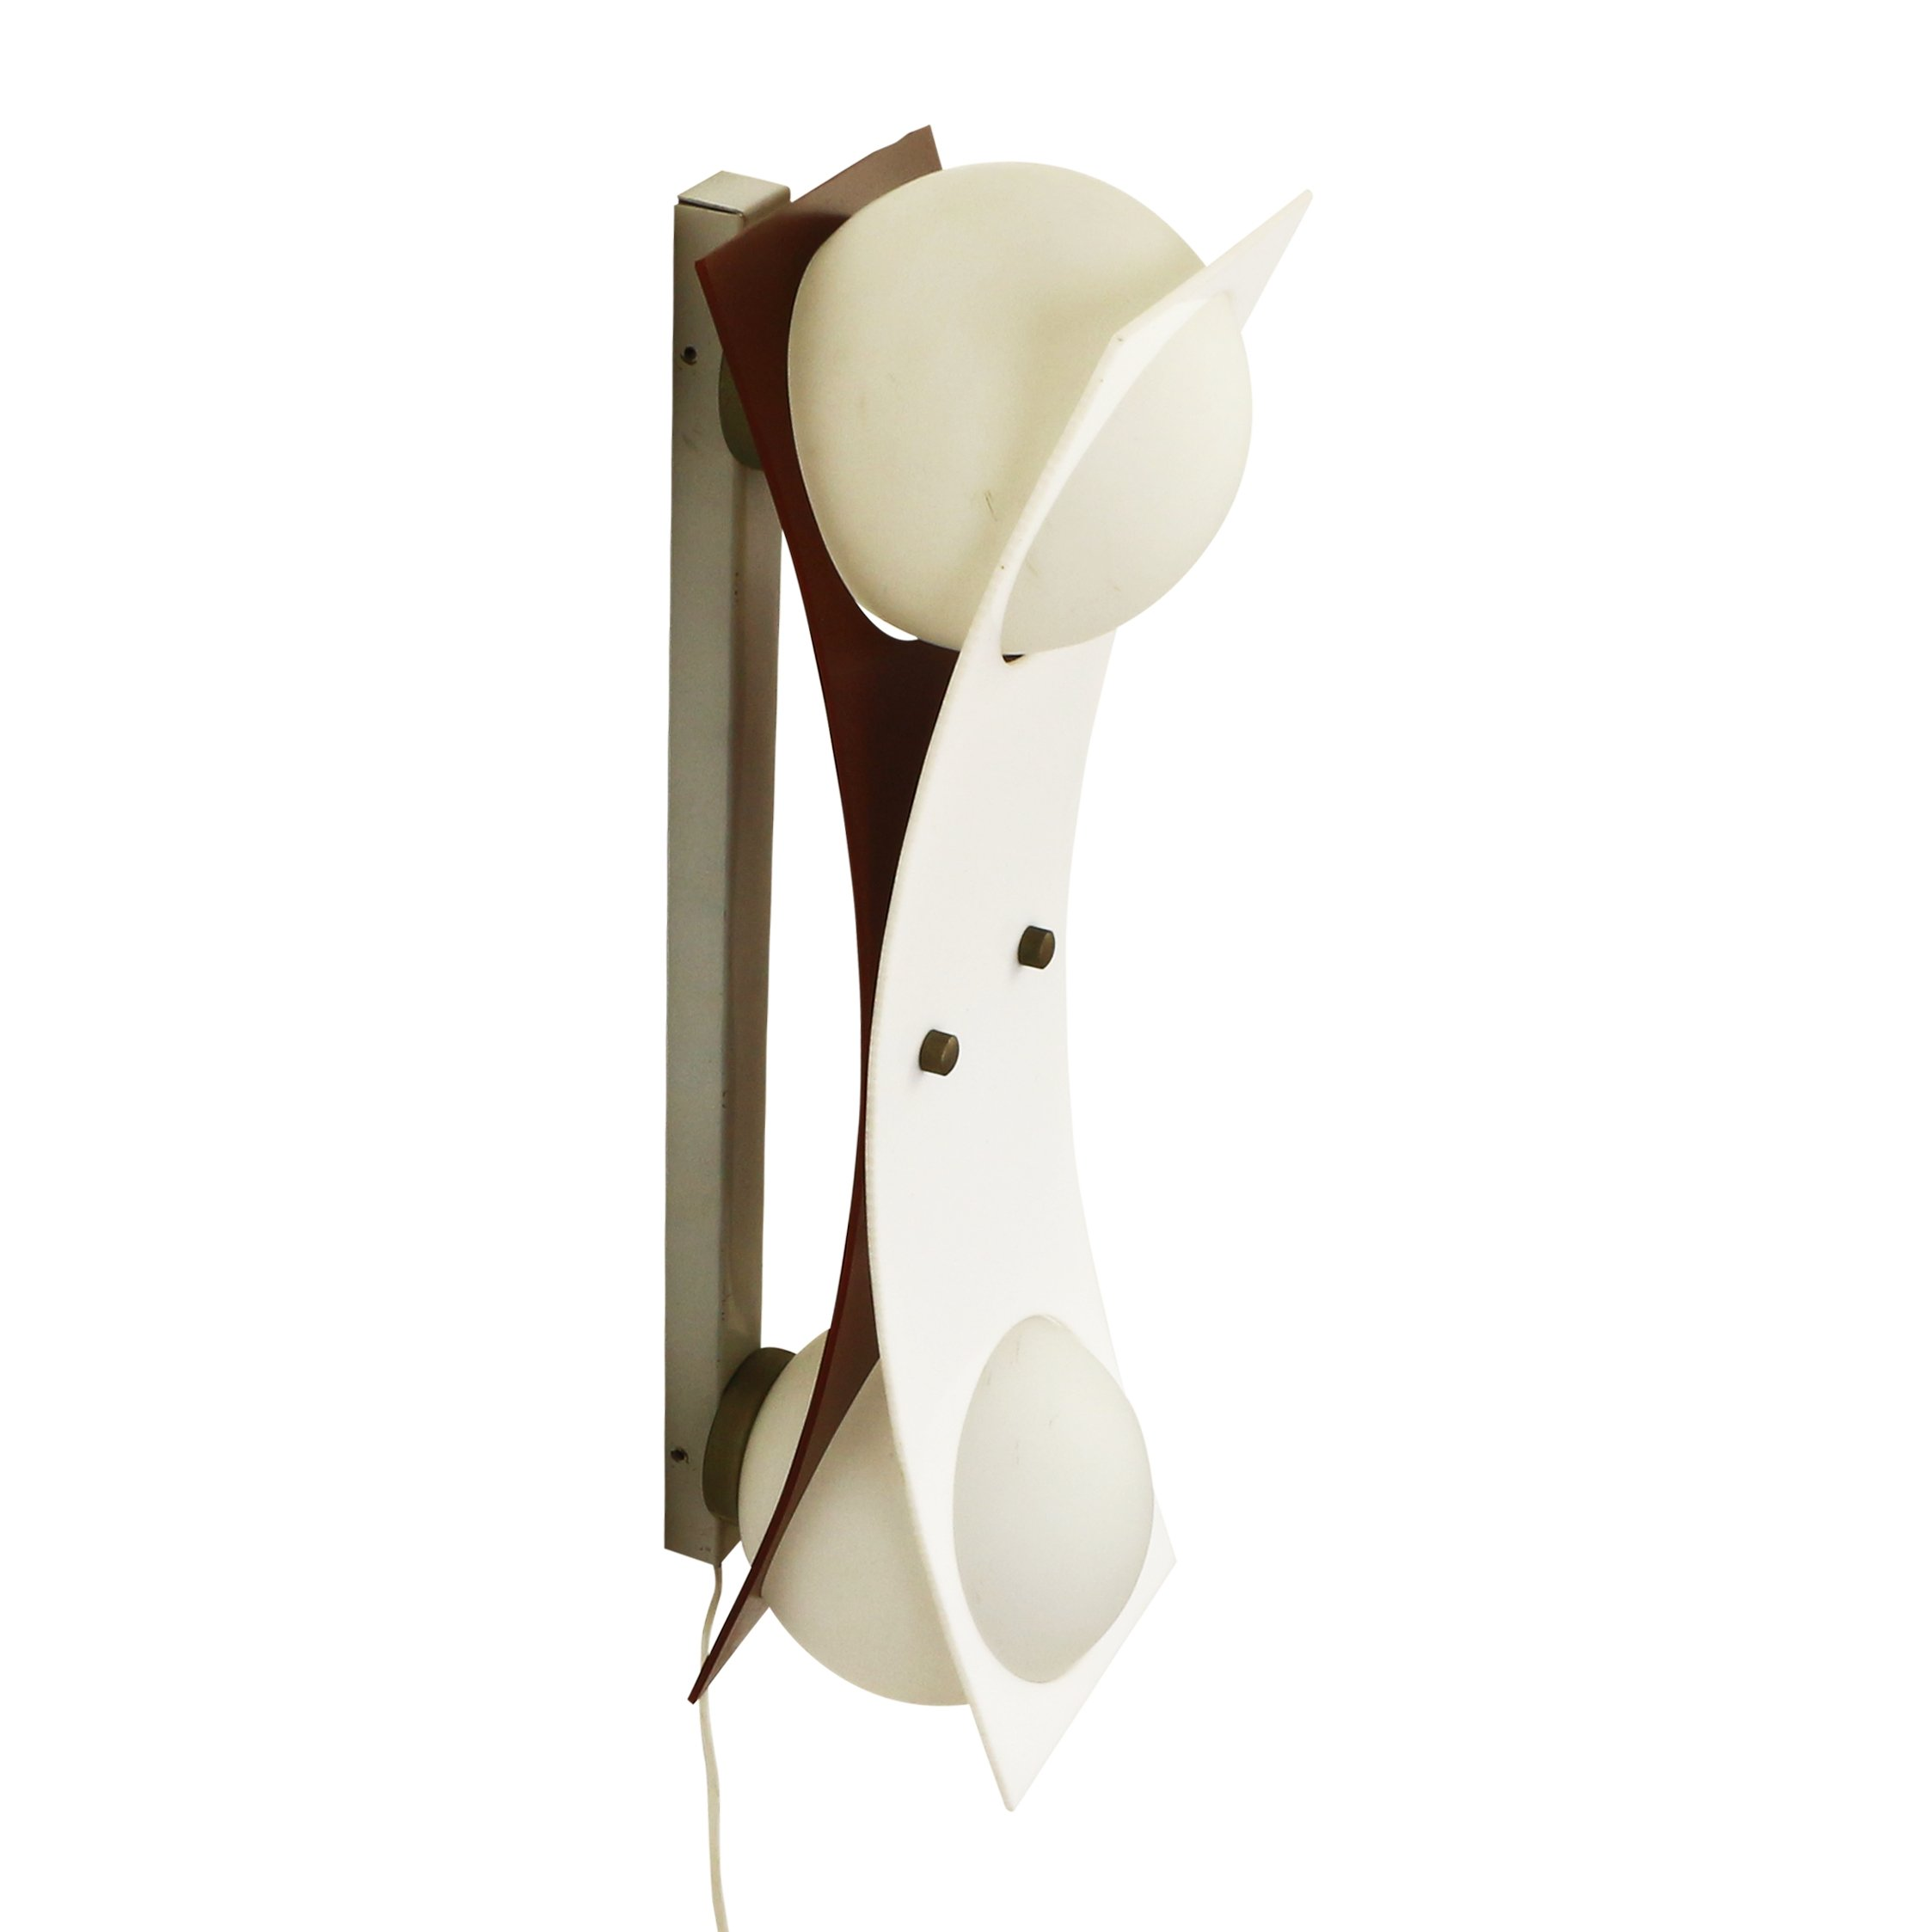 Glass Ball Wall Lights : Double glass ball wall light with white and brown perspex details, 1970s #1124